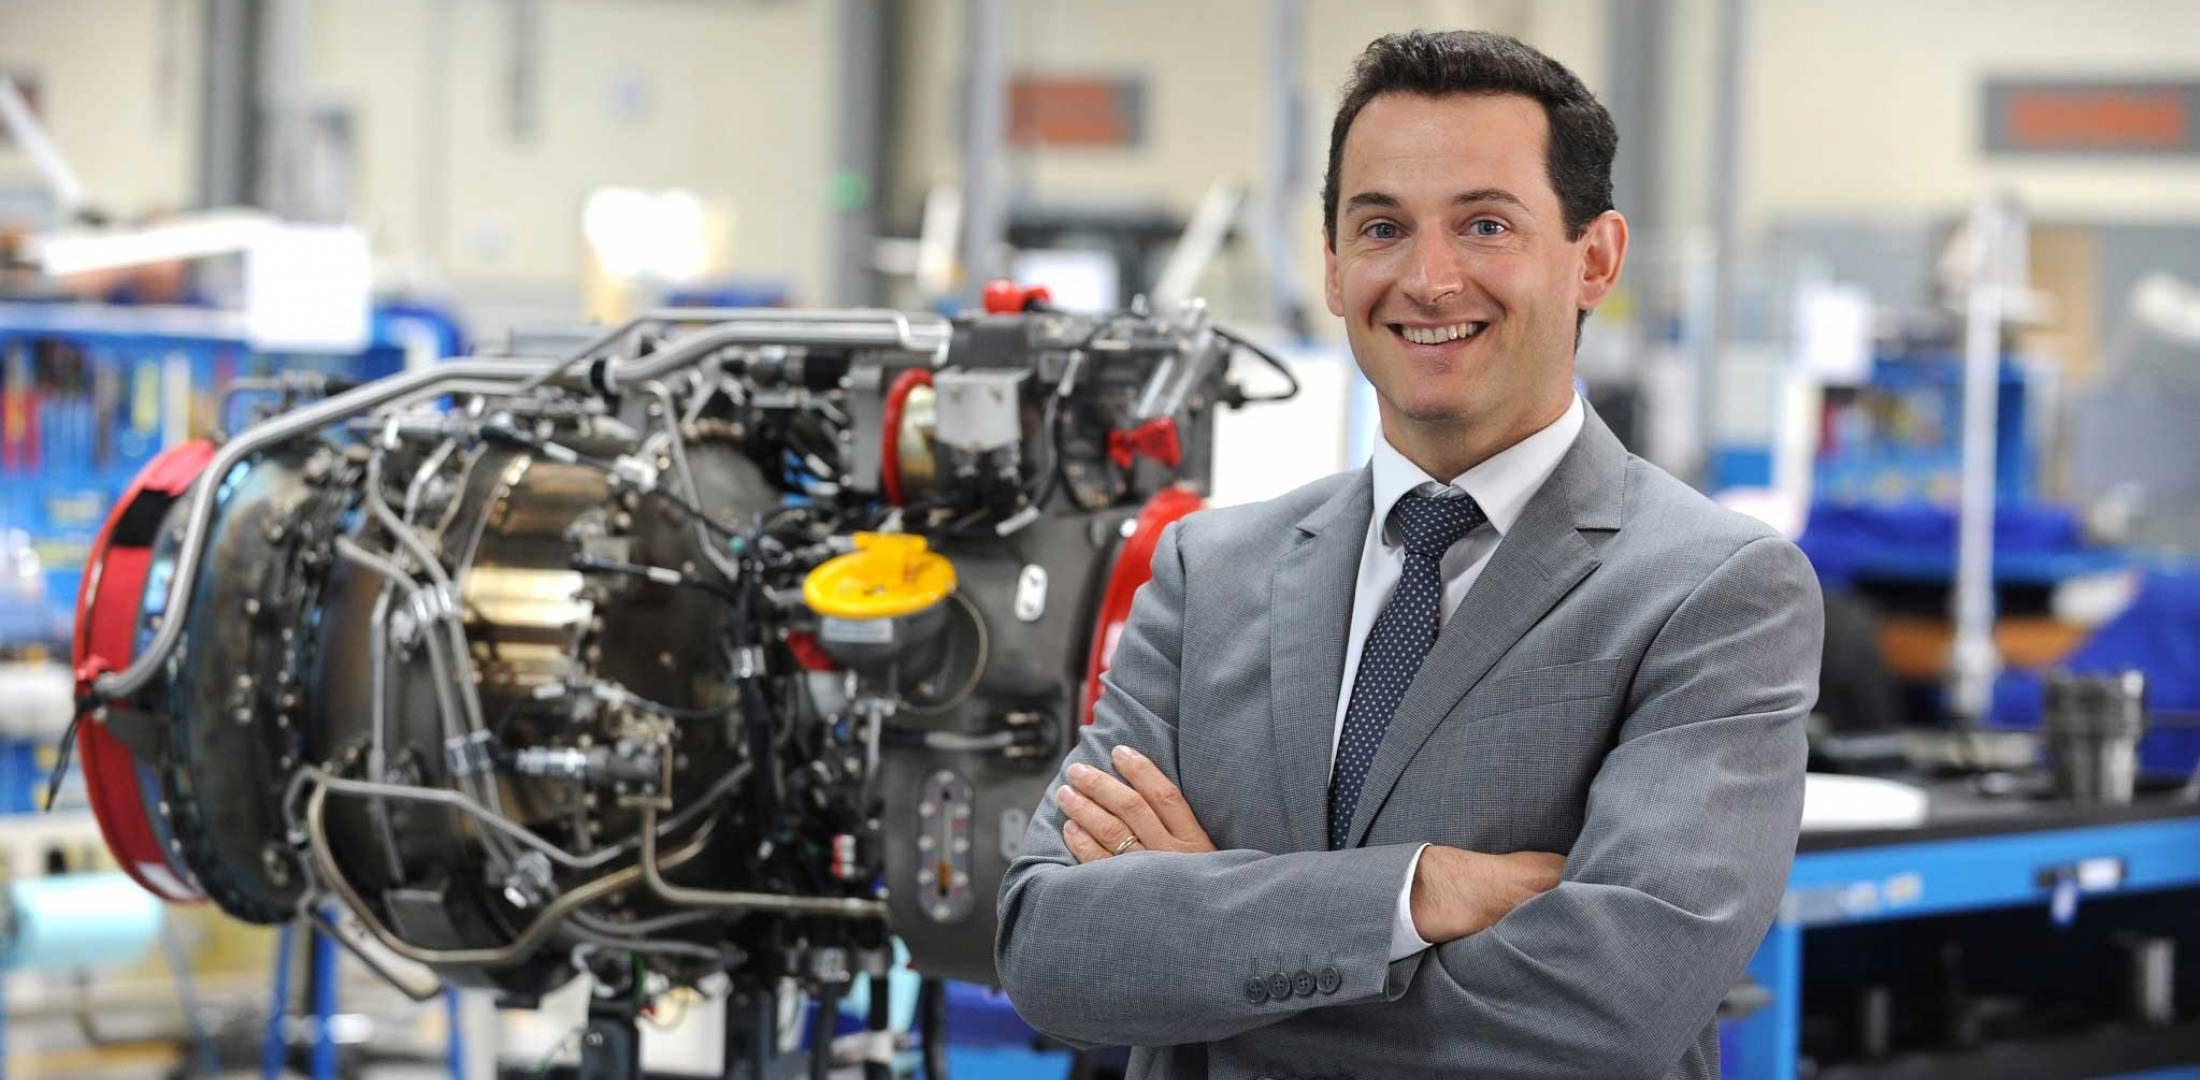 man standing in front of engine